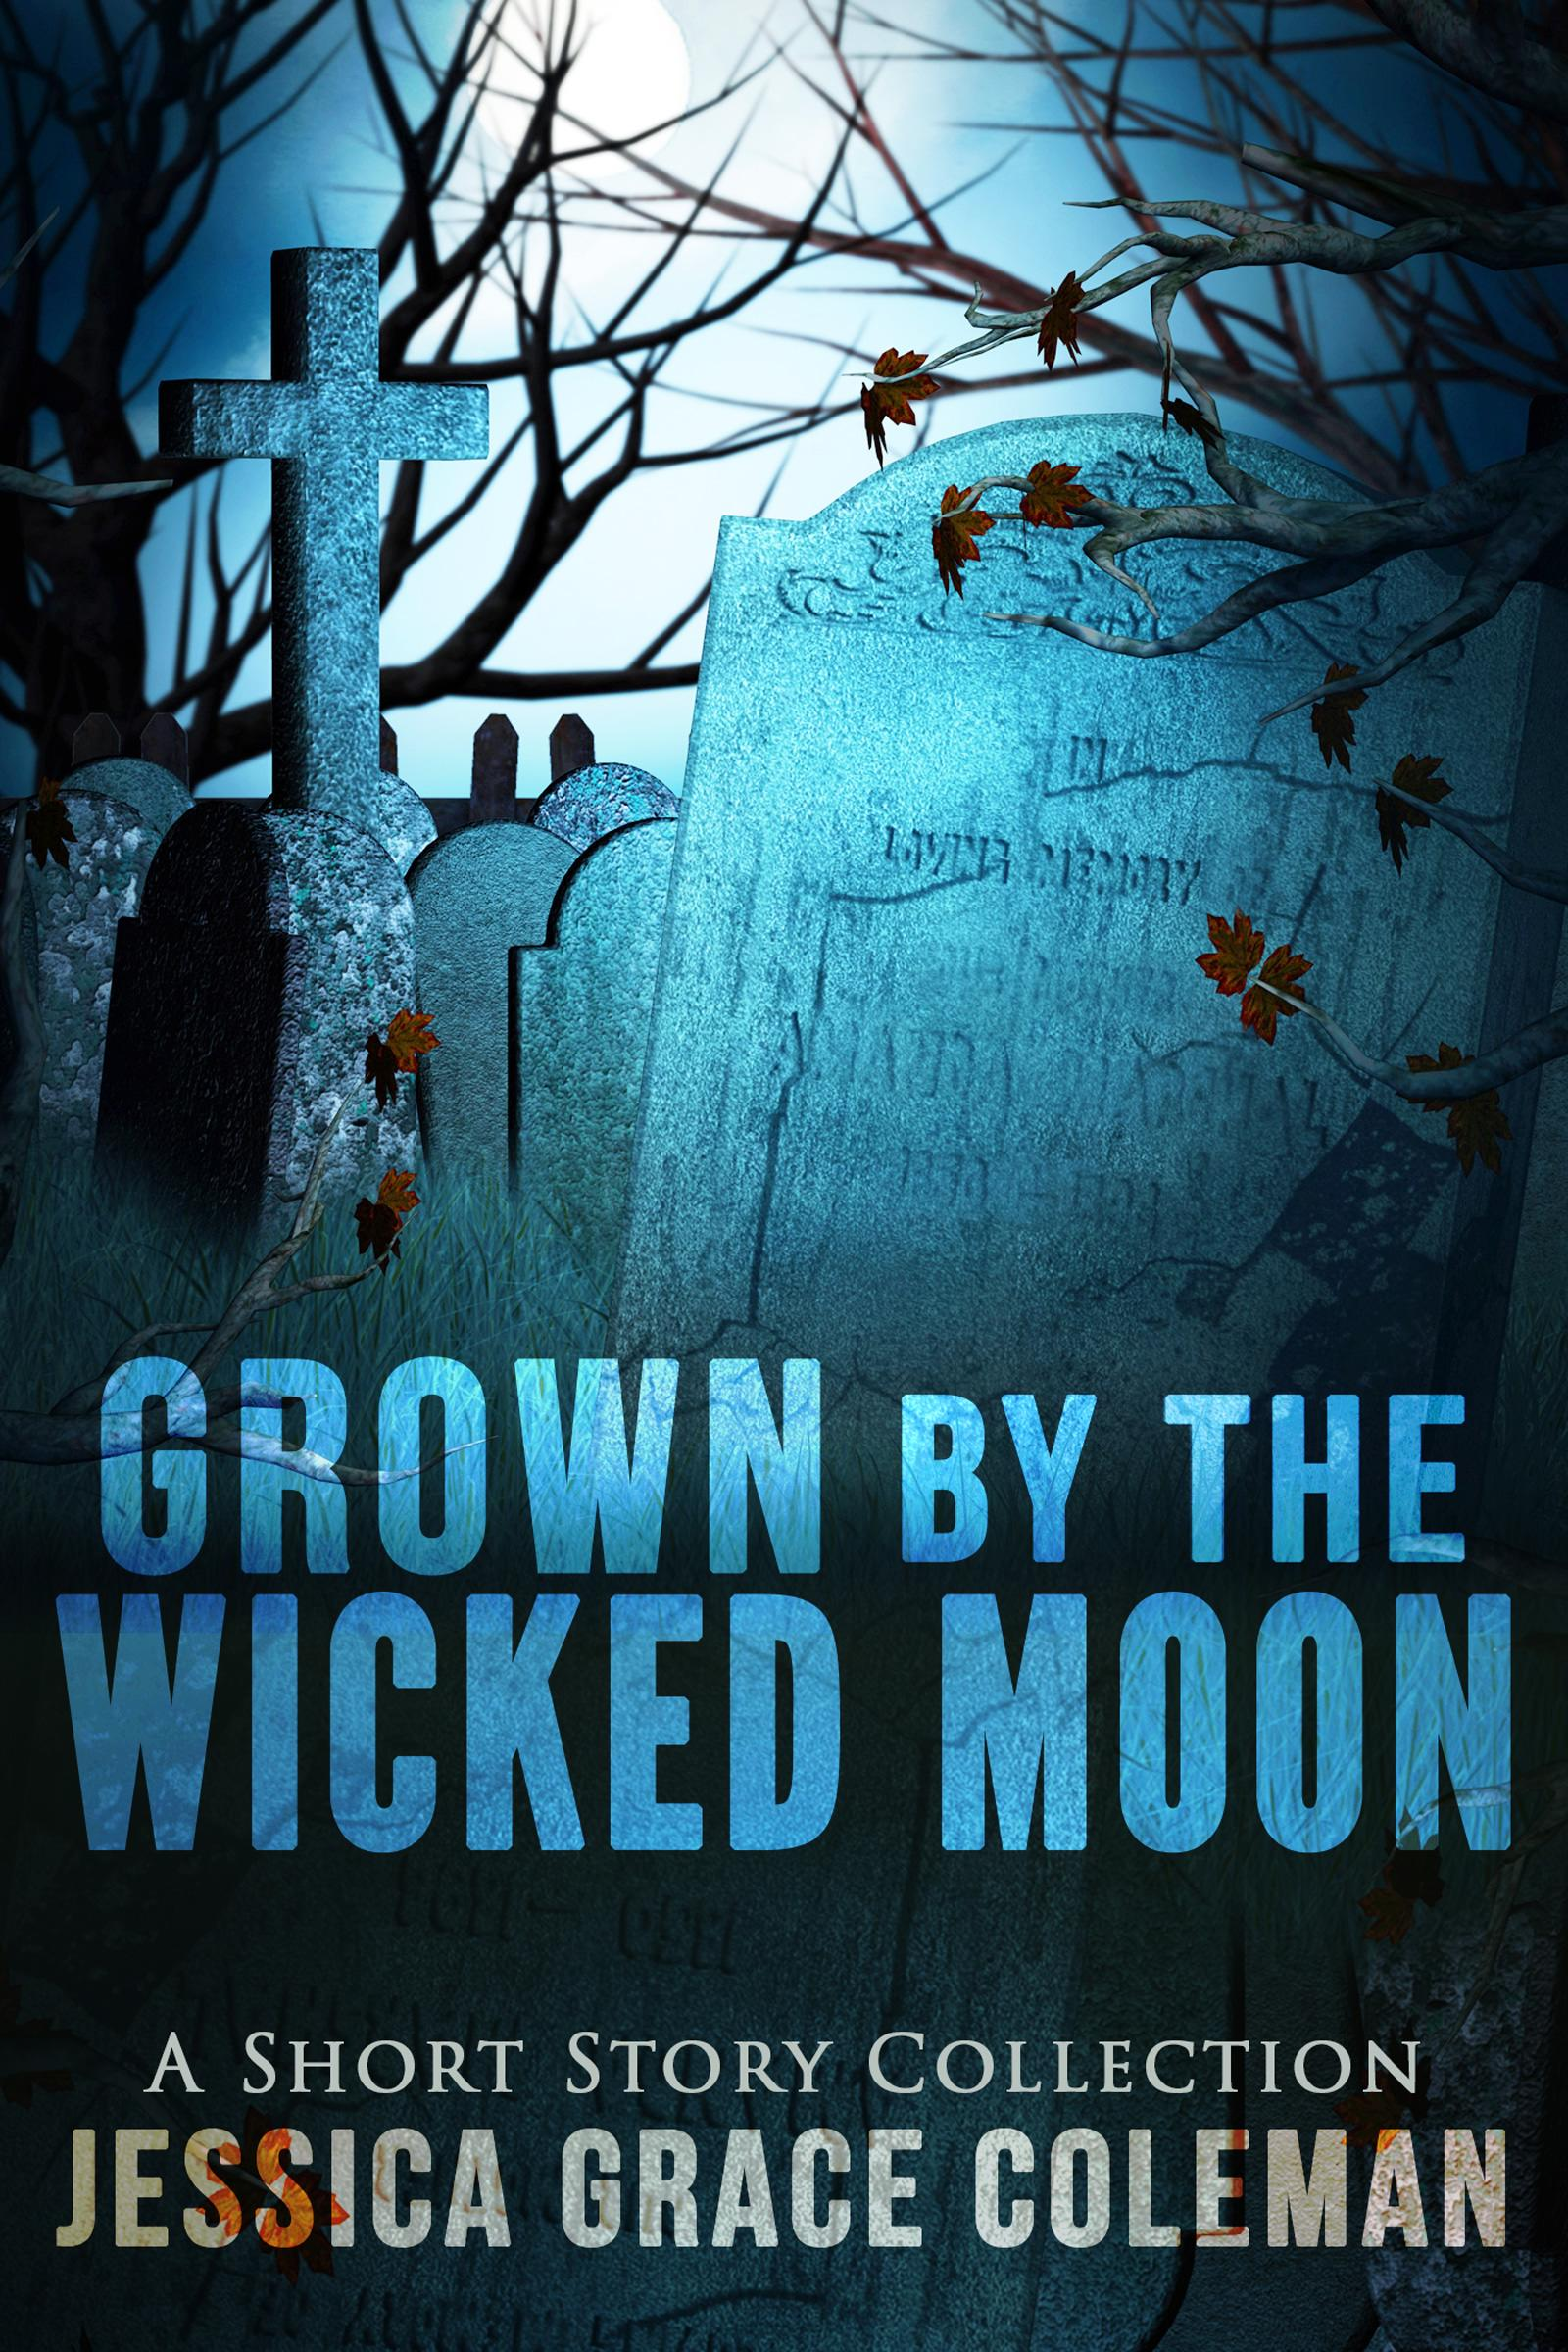 Grown By The Wicked Moon by Jessica Grace Coleman